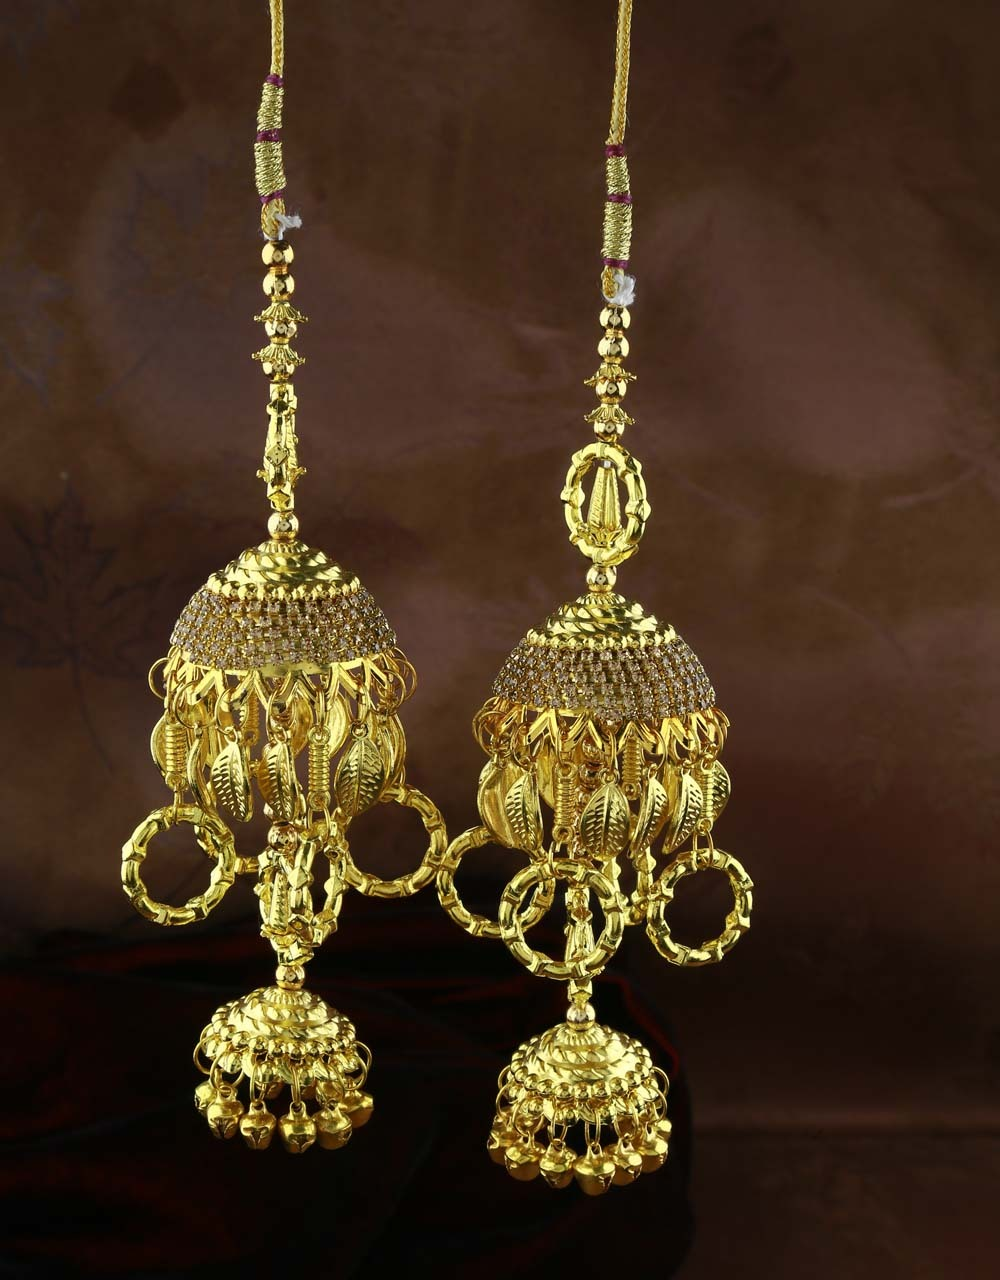 Gold Finished Appealing Pair of Kalira for Women with Hanging Droplets